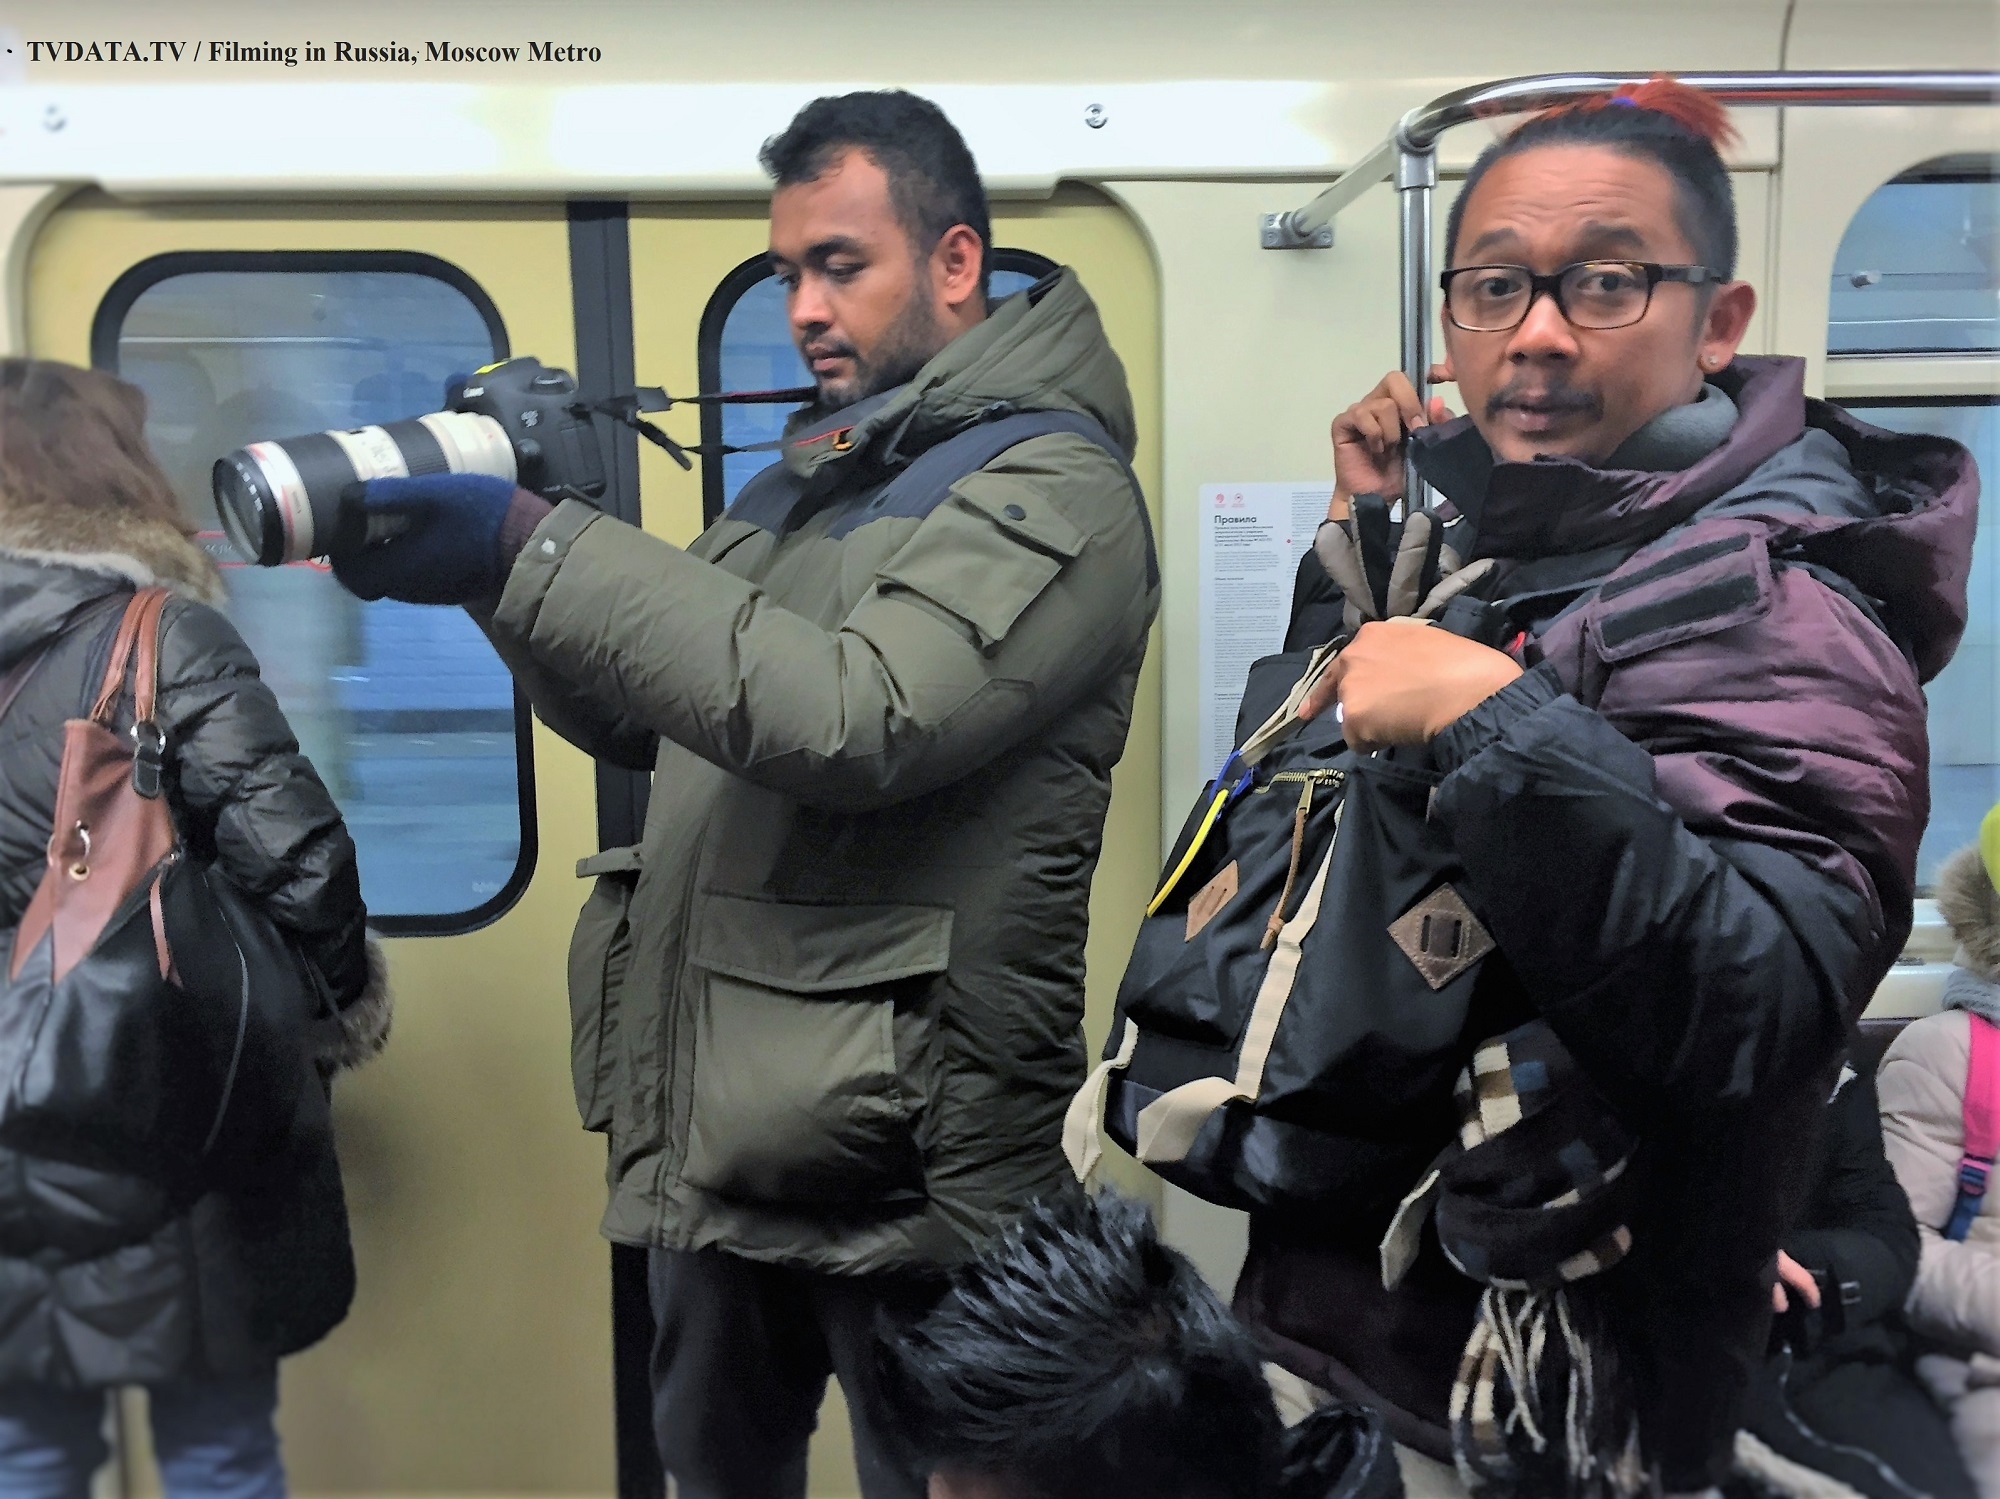 filming in Moscow, Metro